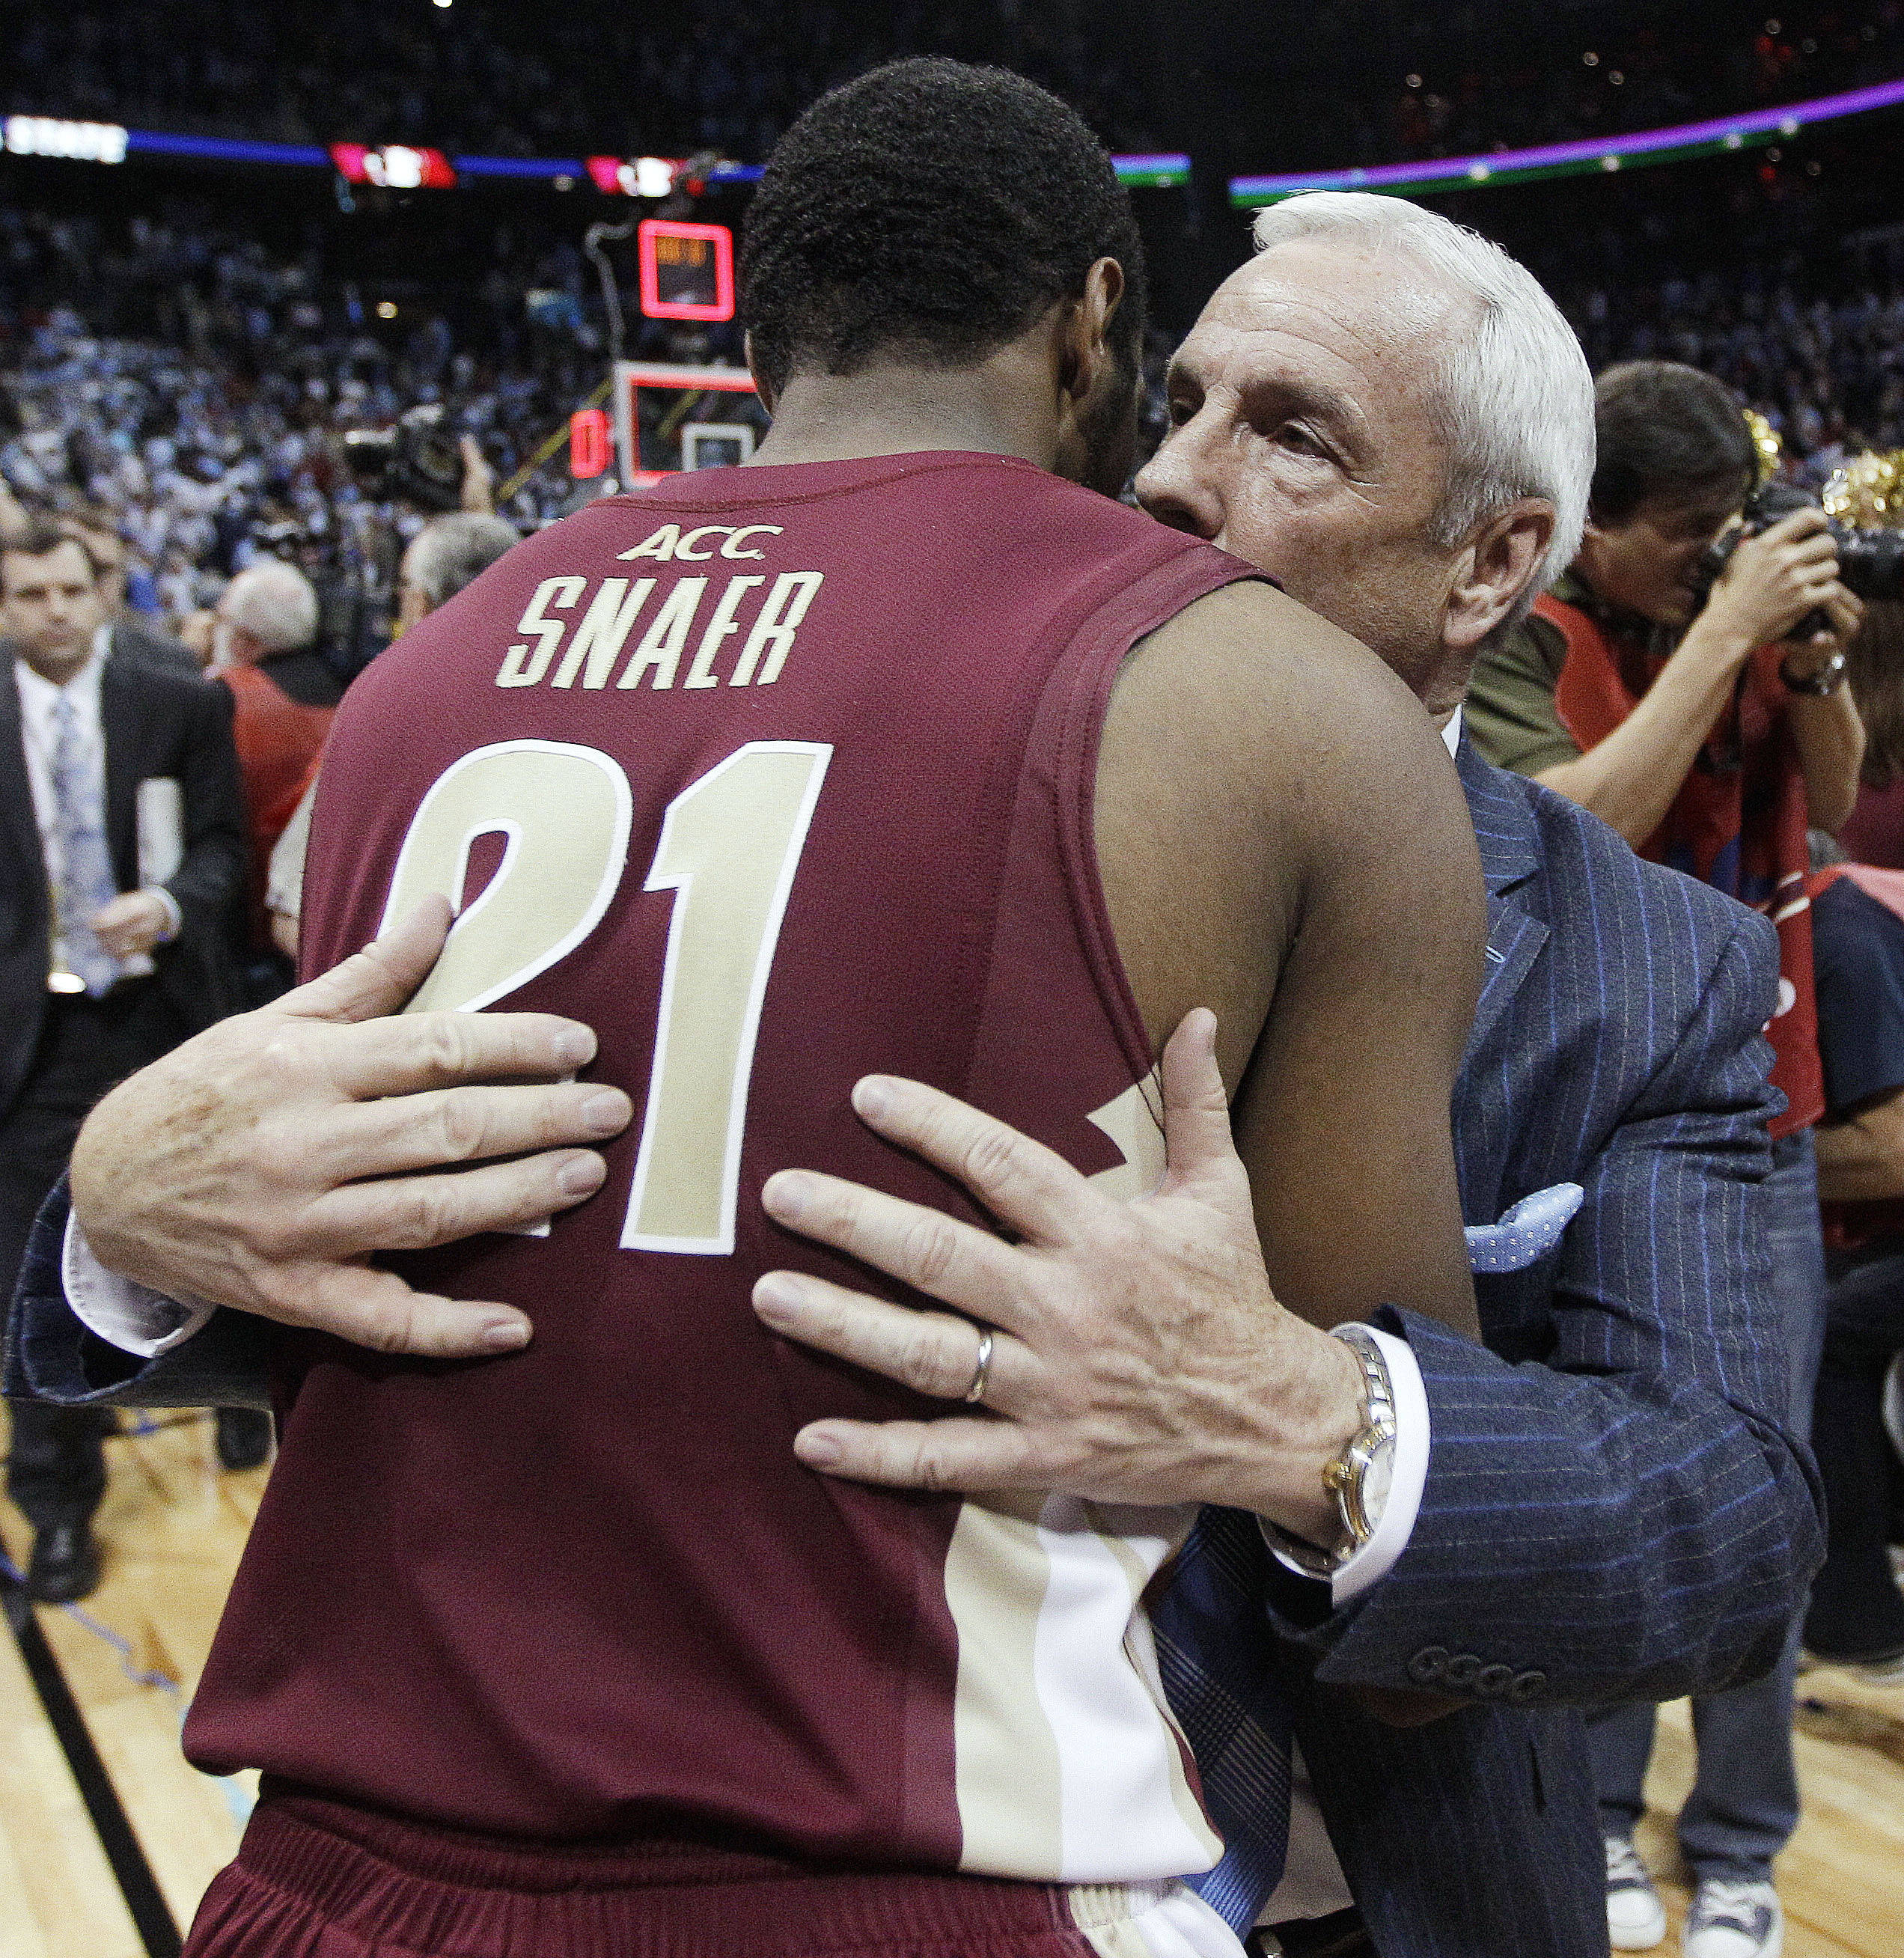 North Carolina coach Roy Williams embraces Michael Snaer. (AP Photo/Chuck Burton)